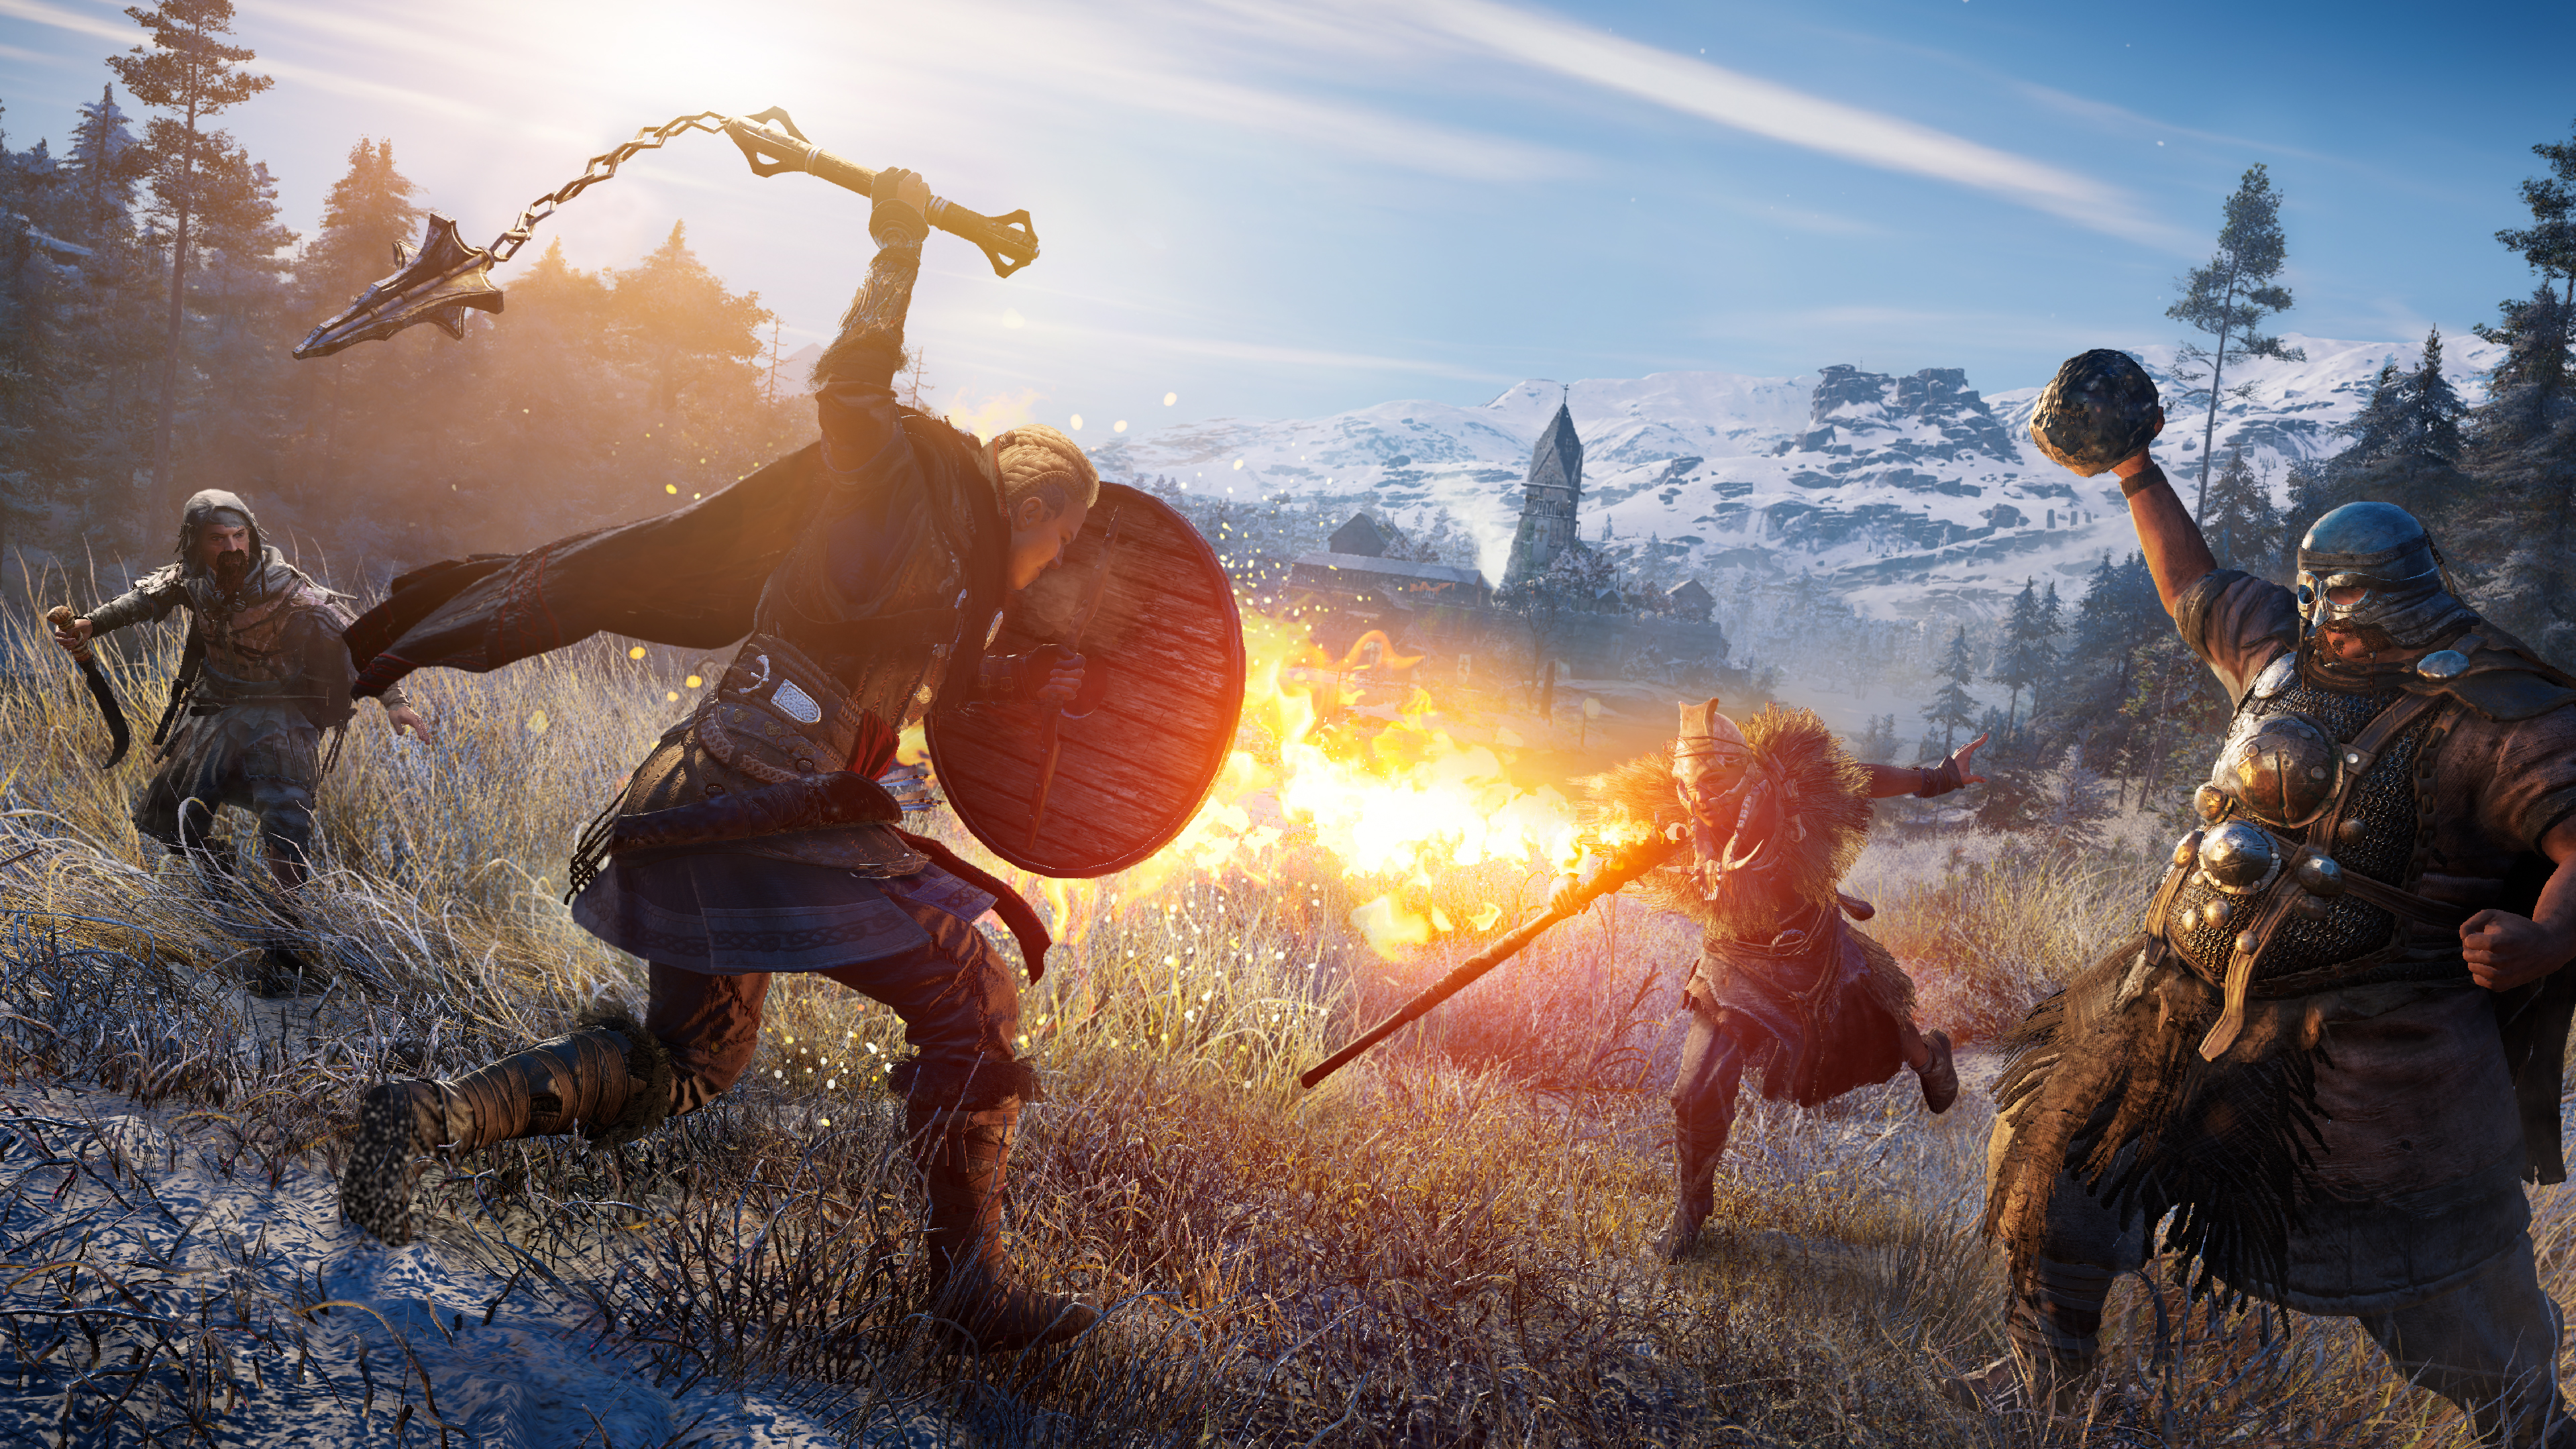 Eivor fighting some well-armored enemies in a frosty landscape in Assassin's Creed Valhalla